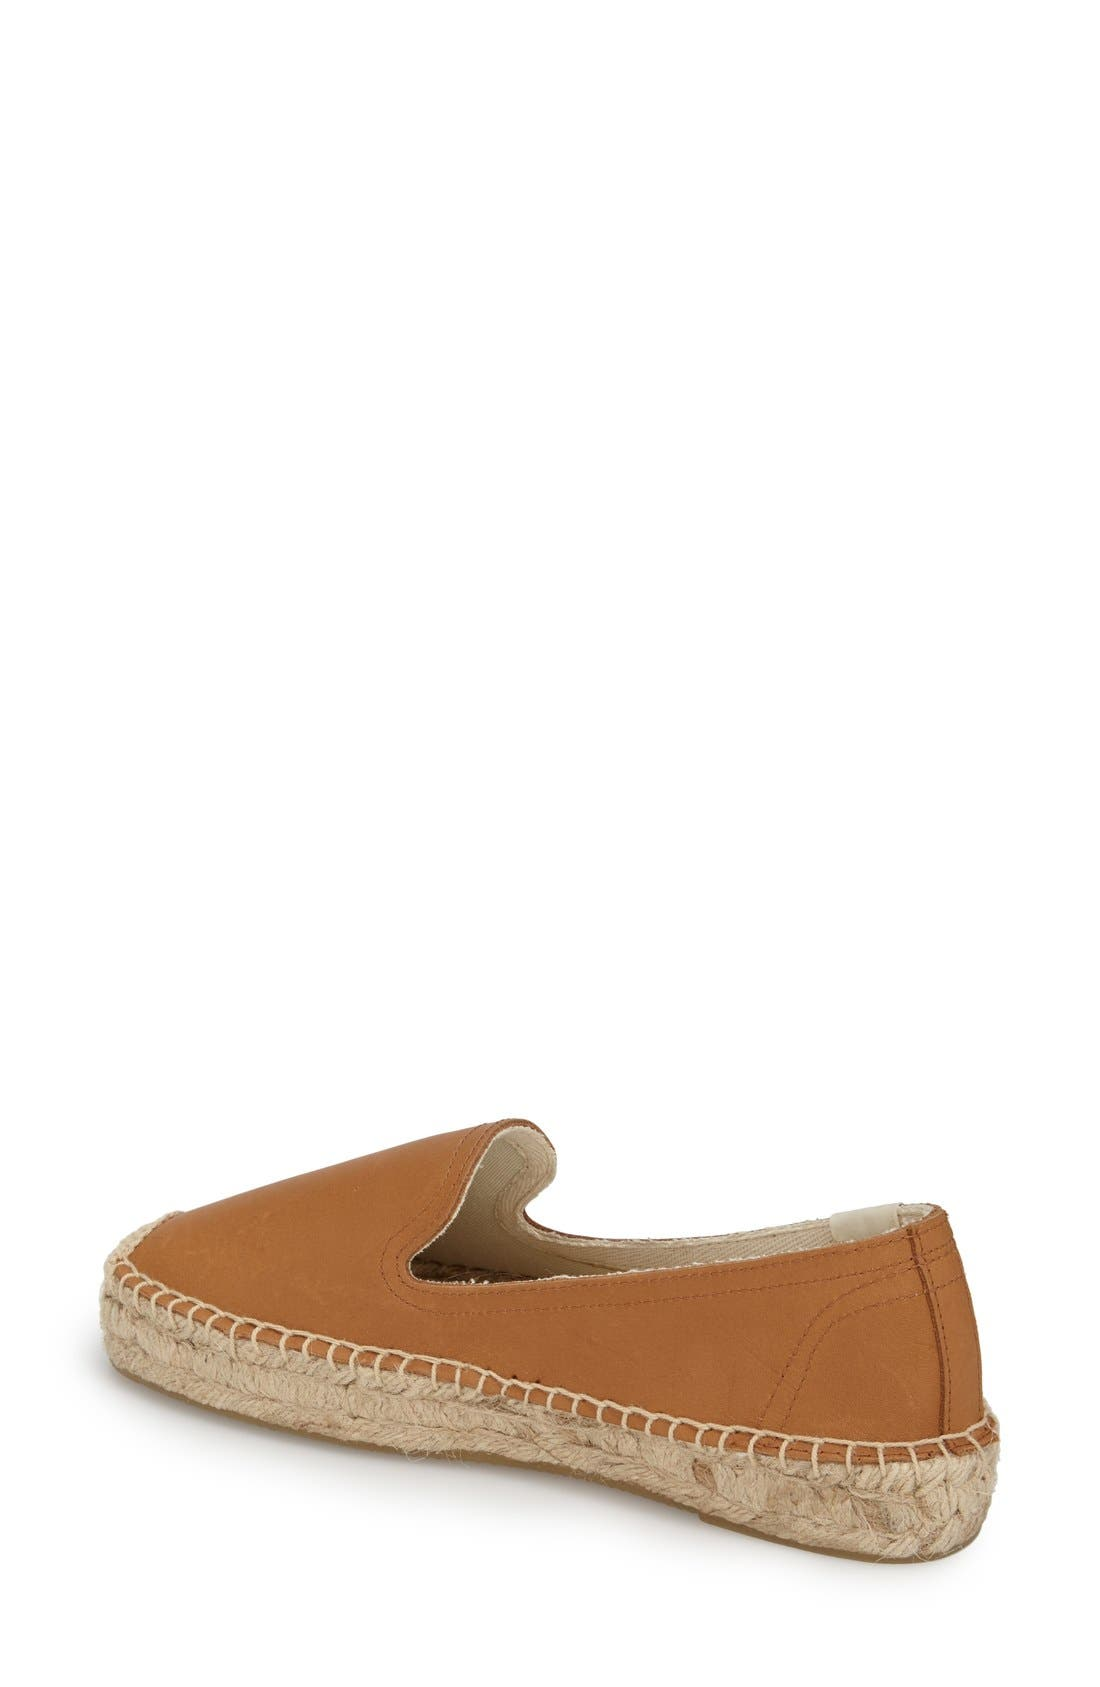 SOLUDOS, 'Smoking' Espadrille Platform Shoe, Alternate thumbnail 5, color, TAN LEATHER